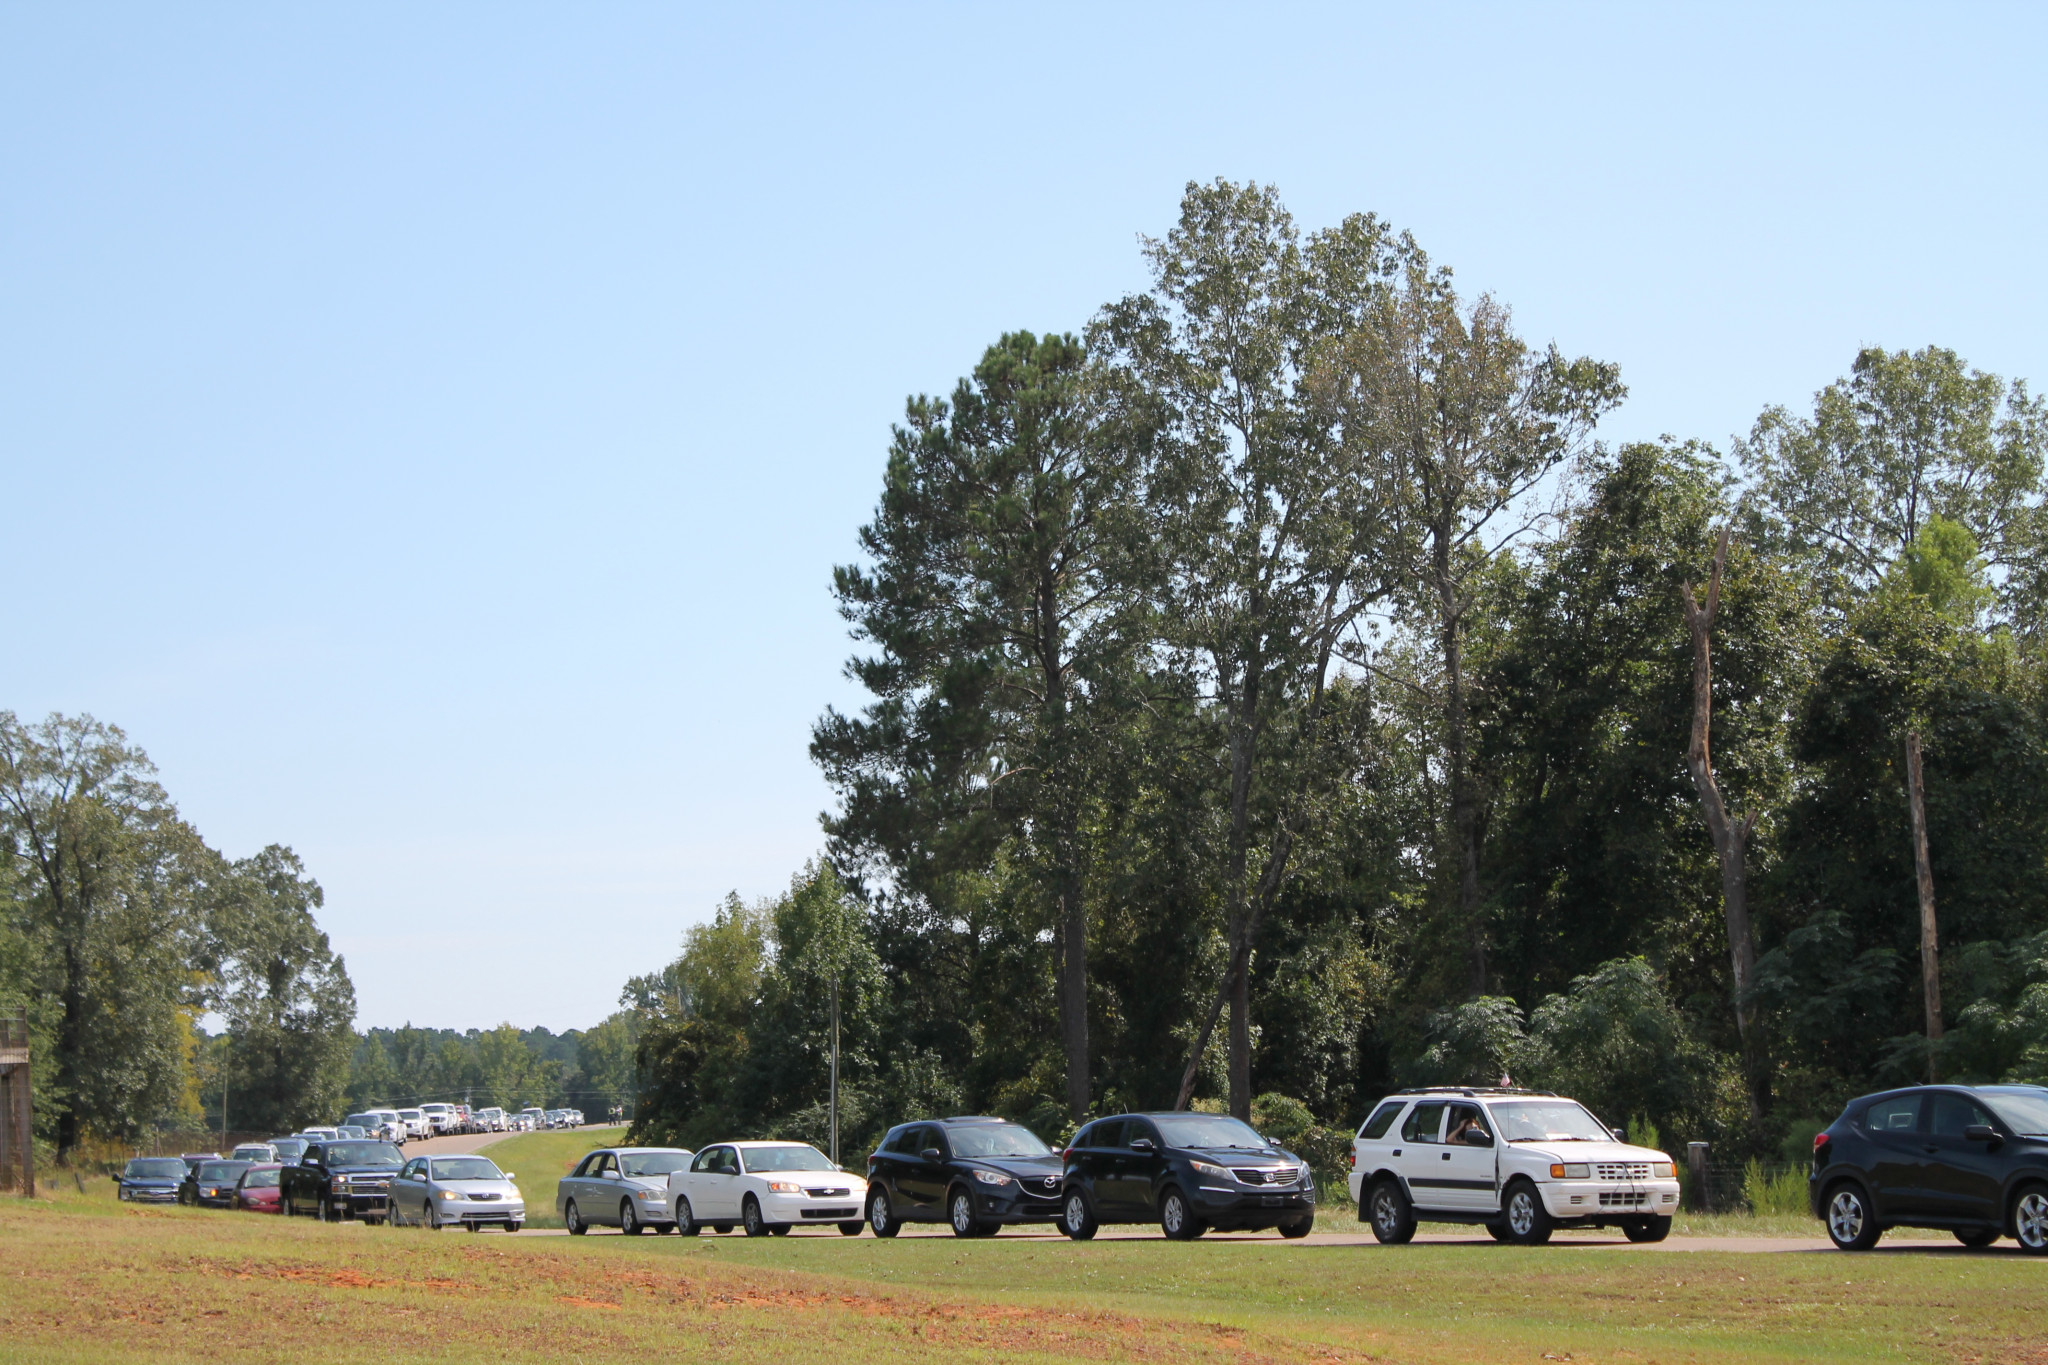 Cars lined up at the Expo Center to reeive food boxes and cases of water handed out by the Louisiana National Guard.